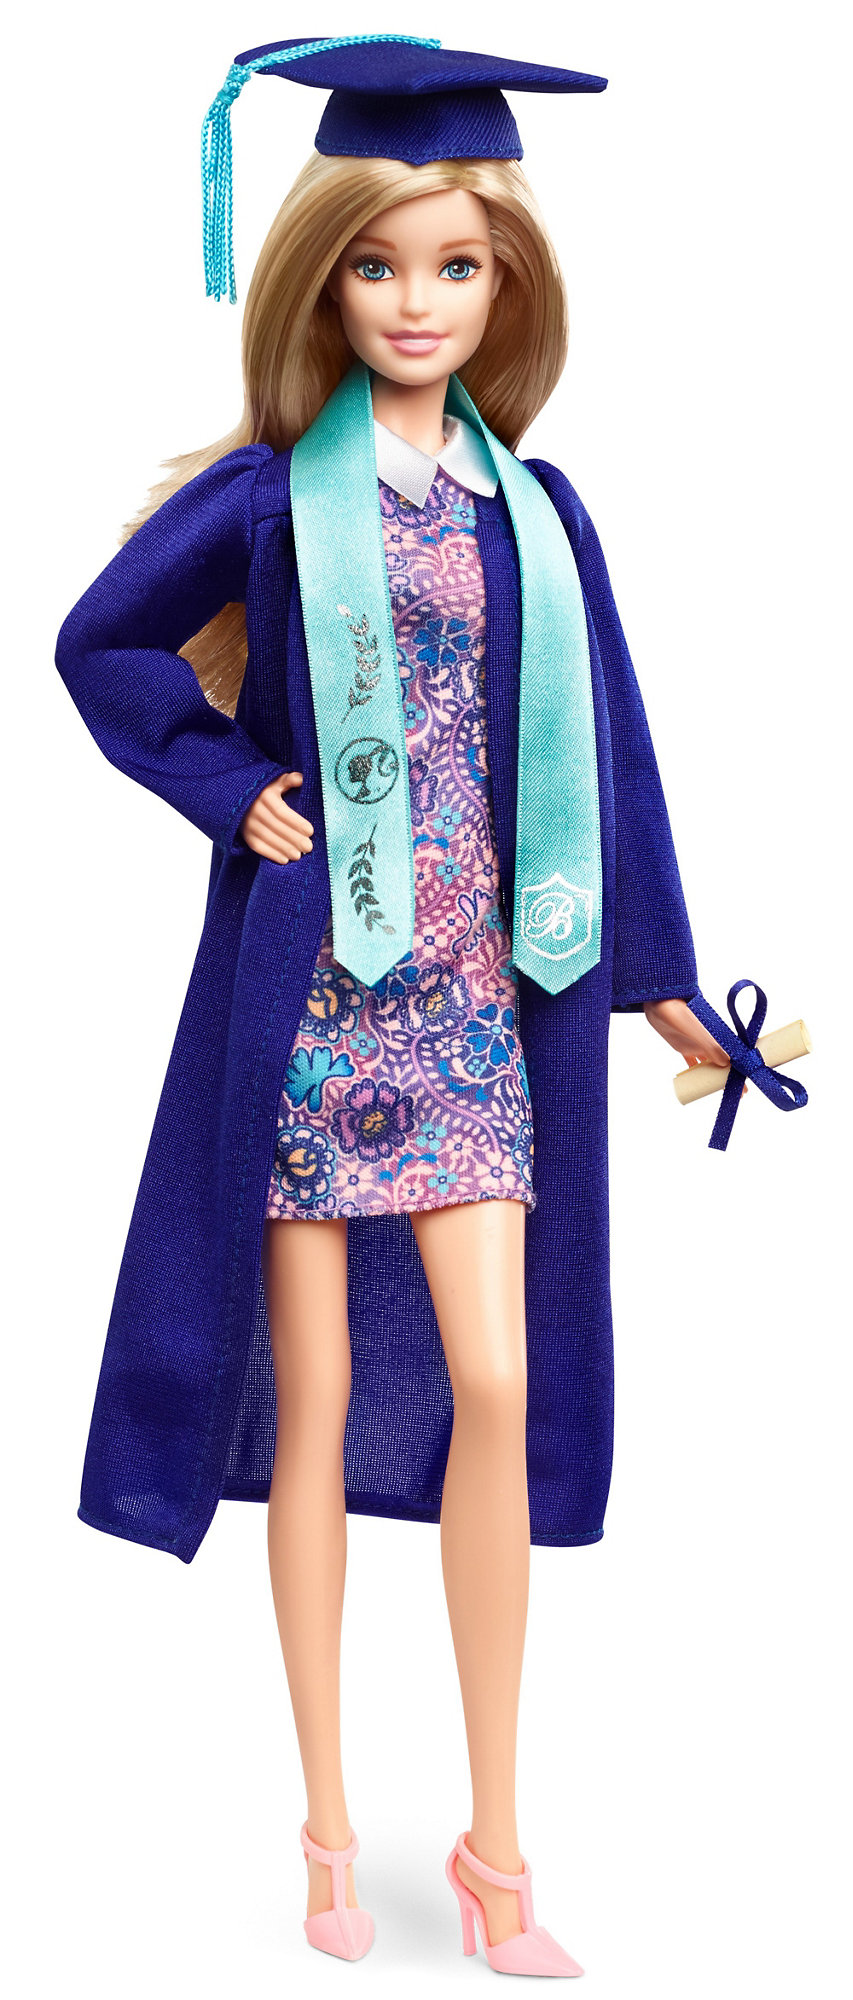 Barbie Graduation Day Doll, Blonde by Mattel